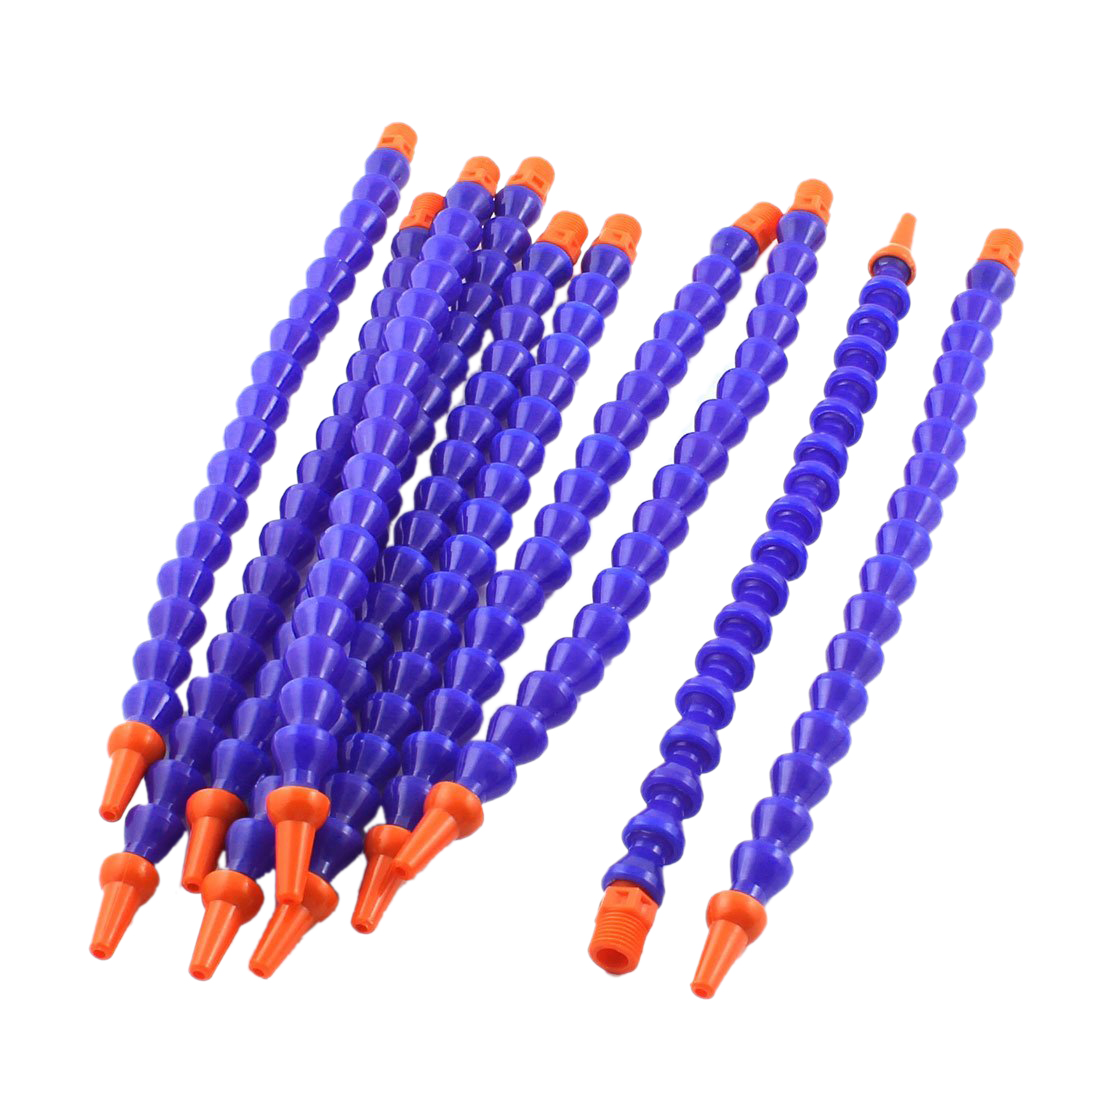 10PCS Round Nozzle 1/4PT Flexible Oil Coolant Pipe Hose Blue Orange minions the doodle book